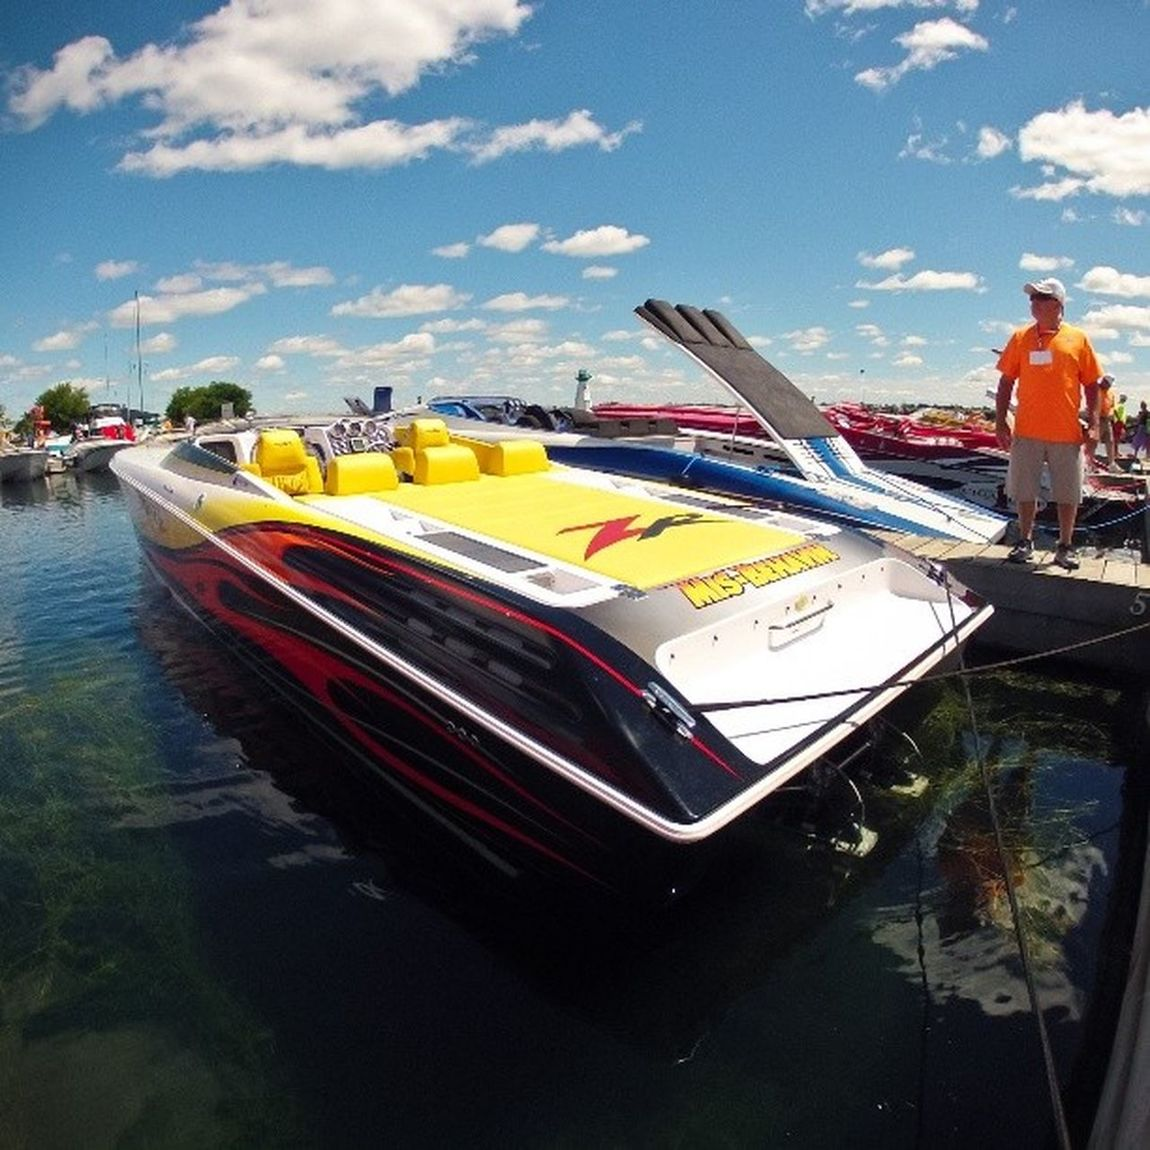 Summer memories: this Beast of a Boat took over our Bearth at SandraSLawnHarbour when the pokerrun came to town. To each their own. prescottontario igersottawa gopro